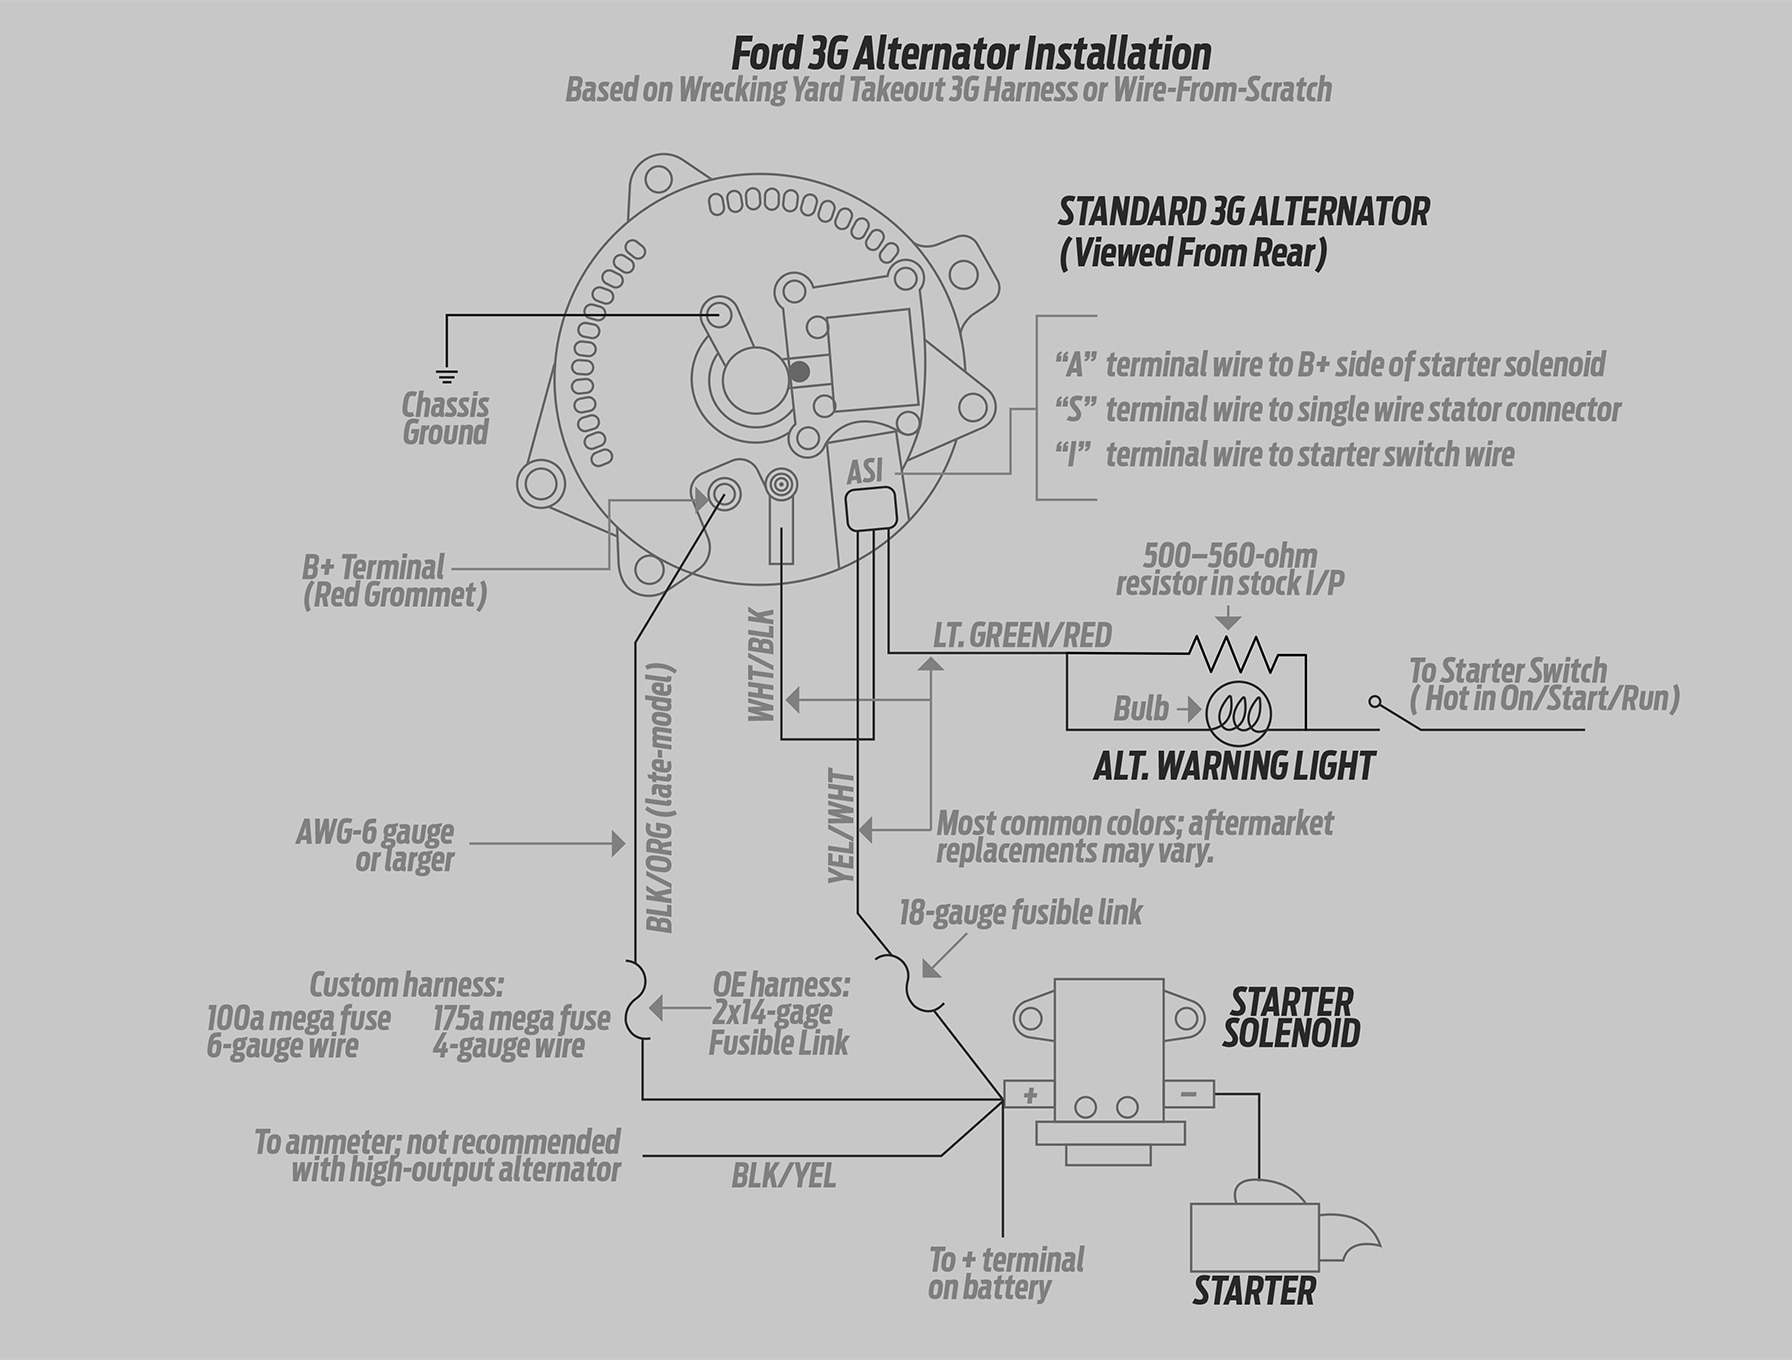 medium resolution of how to install a high output ford 3g alternator into older fords late model ford 302 alternator wiring diagram